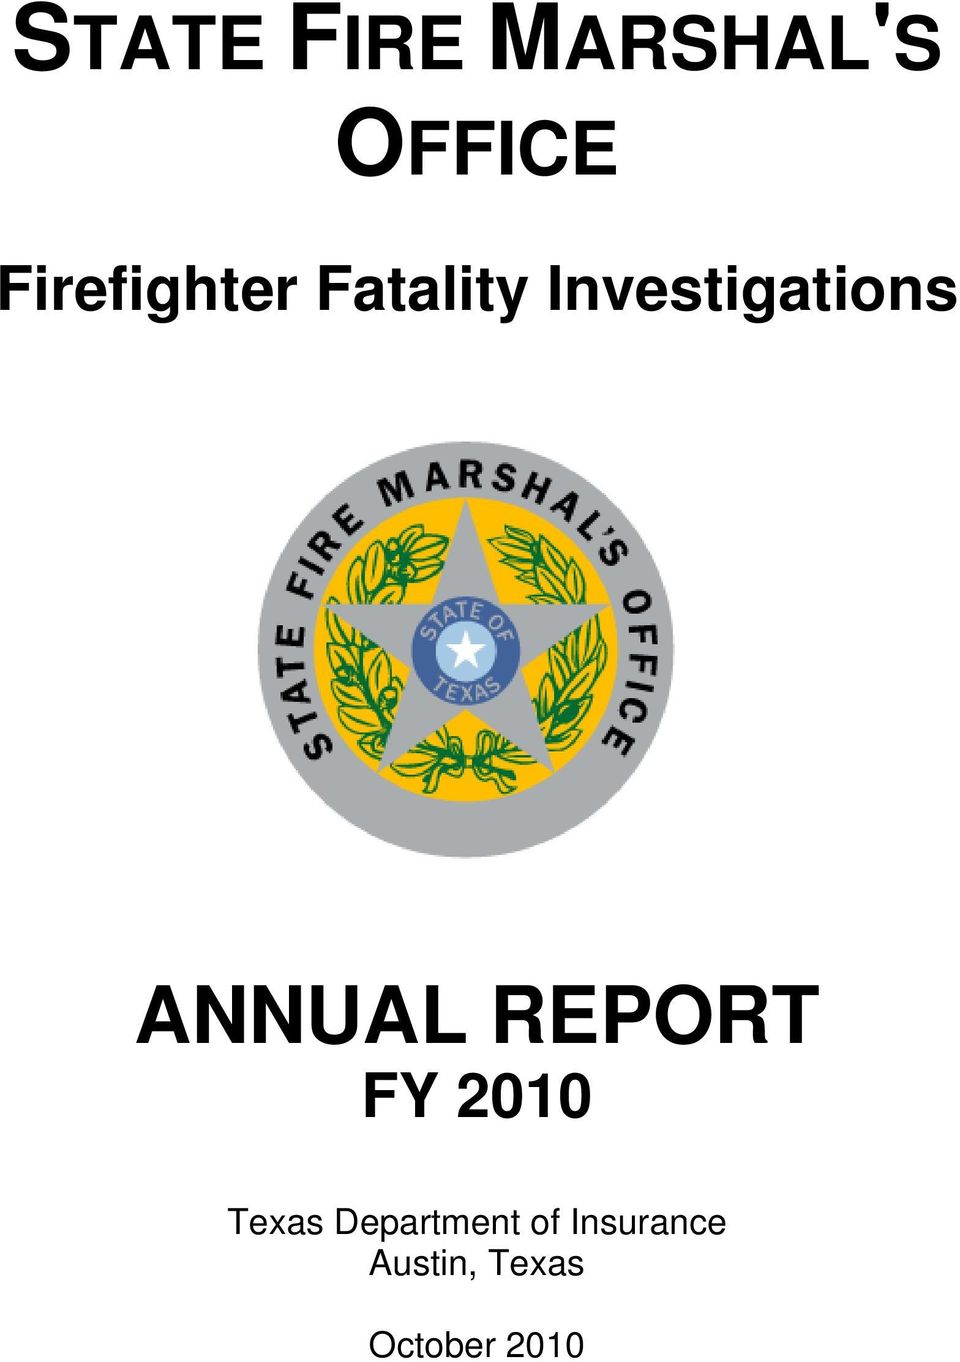 ANNUAL REPORT FY 2010 Texas